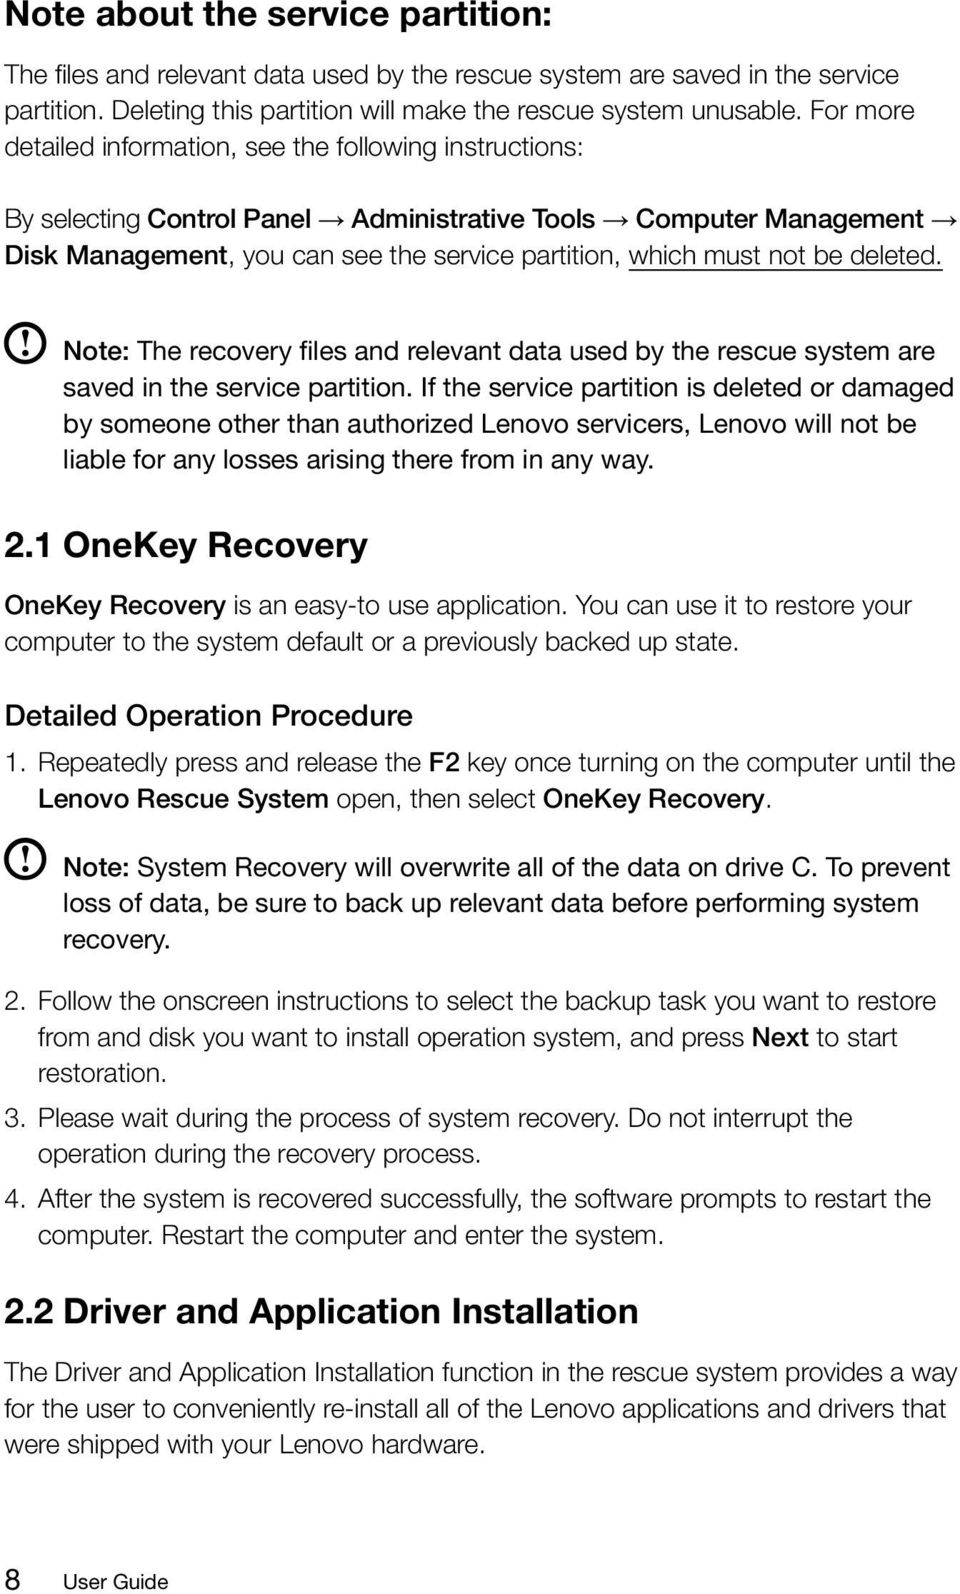 be deleted. Note: The recovery files and relevant data used by the rescue system are saved in the service partition.